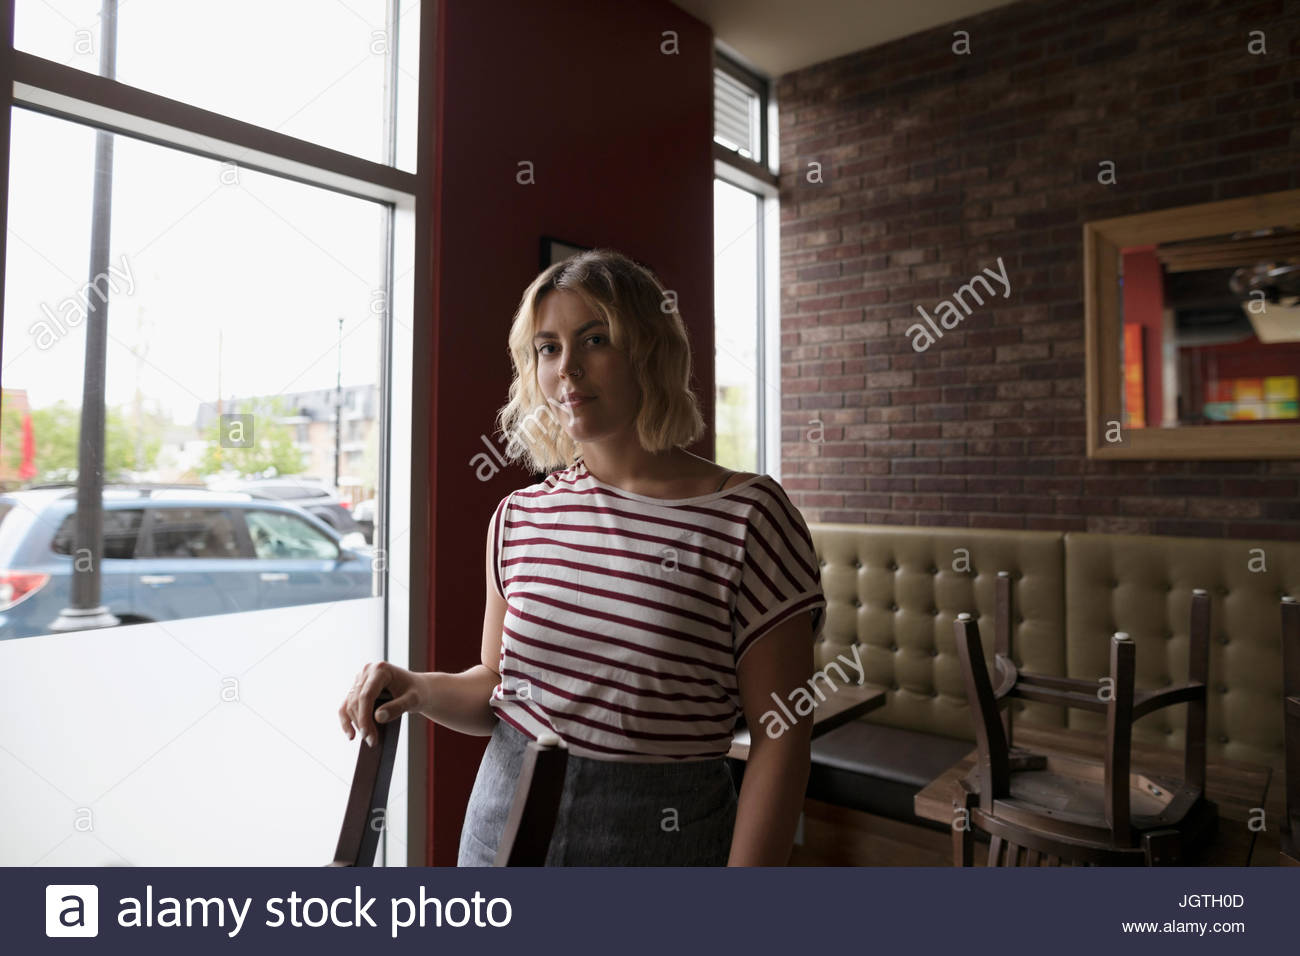 Portrait confident, serious waitress in diner - Stock Image